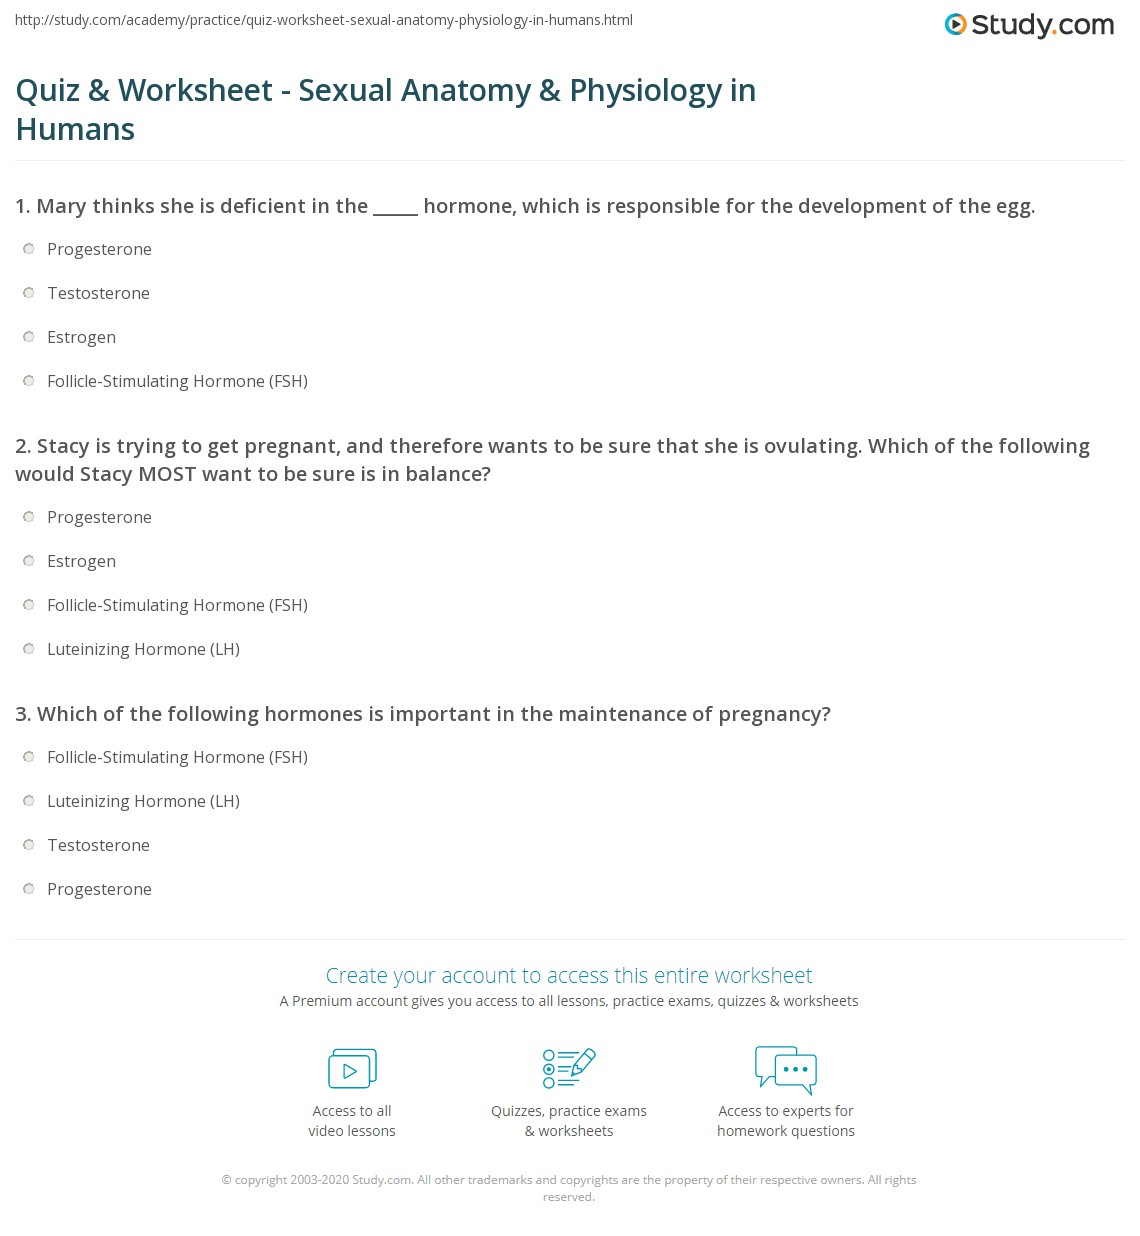 Quiz & Worksheet - Sexual Anatomy & Physiology in Humans | Study.com